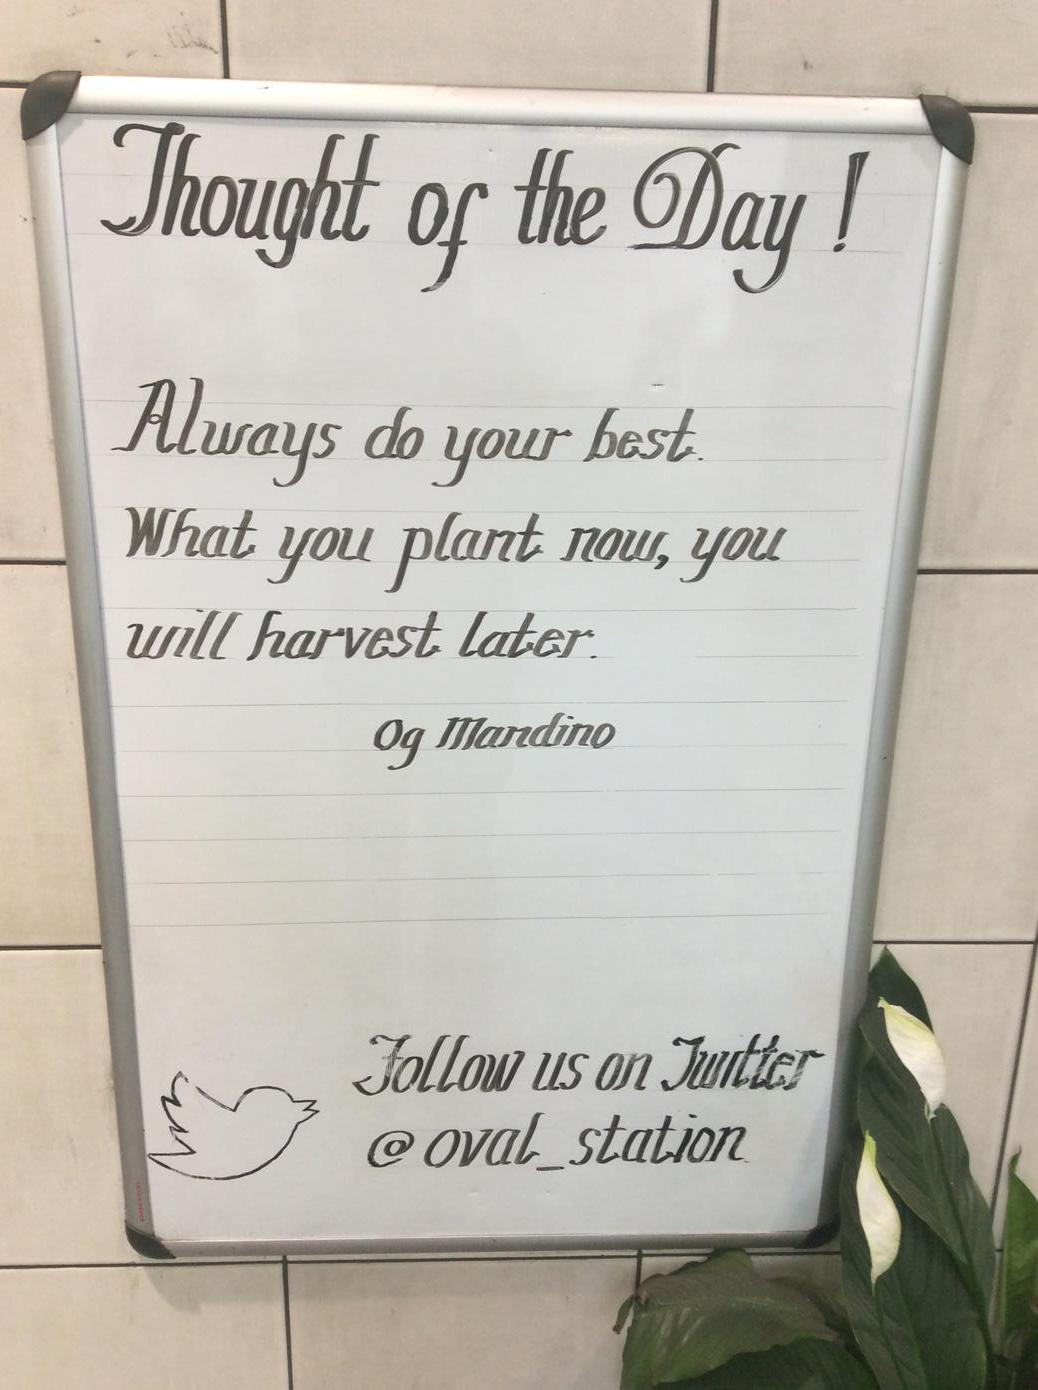 In Pictures: Wisdom On The London Underground